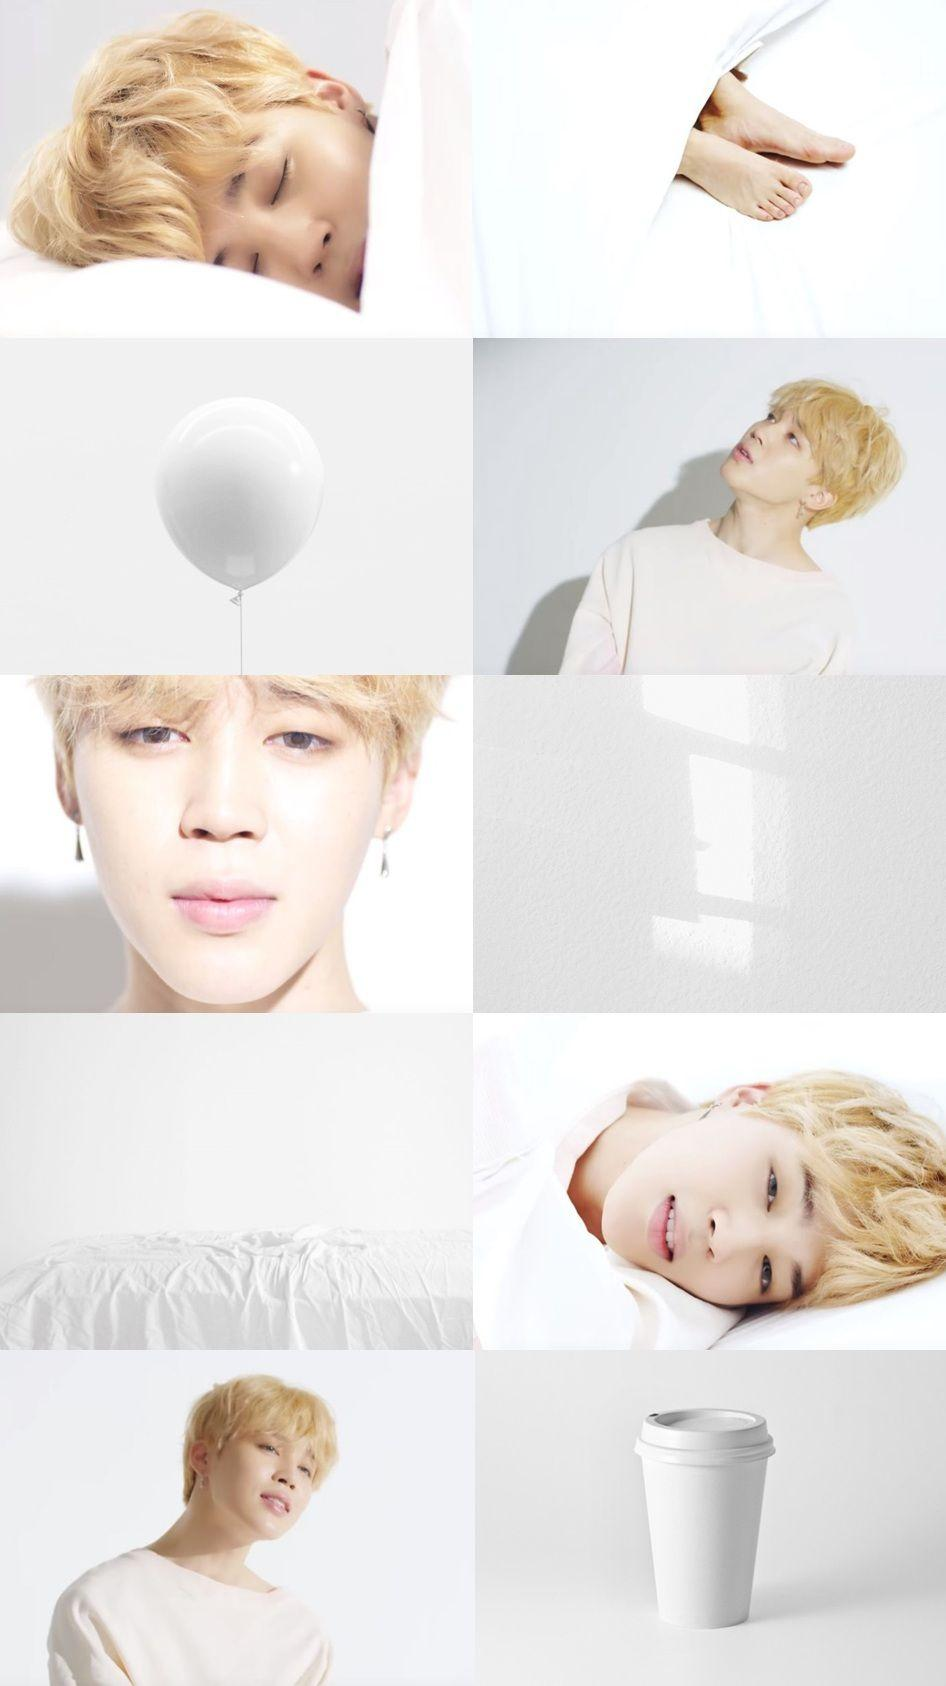 Aesthetic Bts Wallpapers Unique Wallpapers Jimin Wallpapers Pinterest